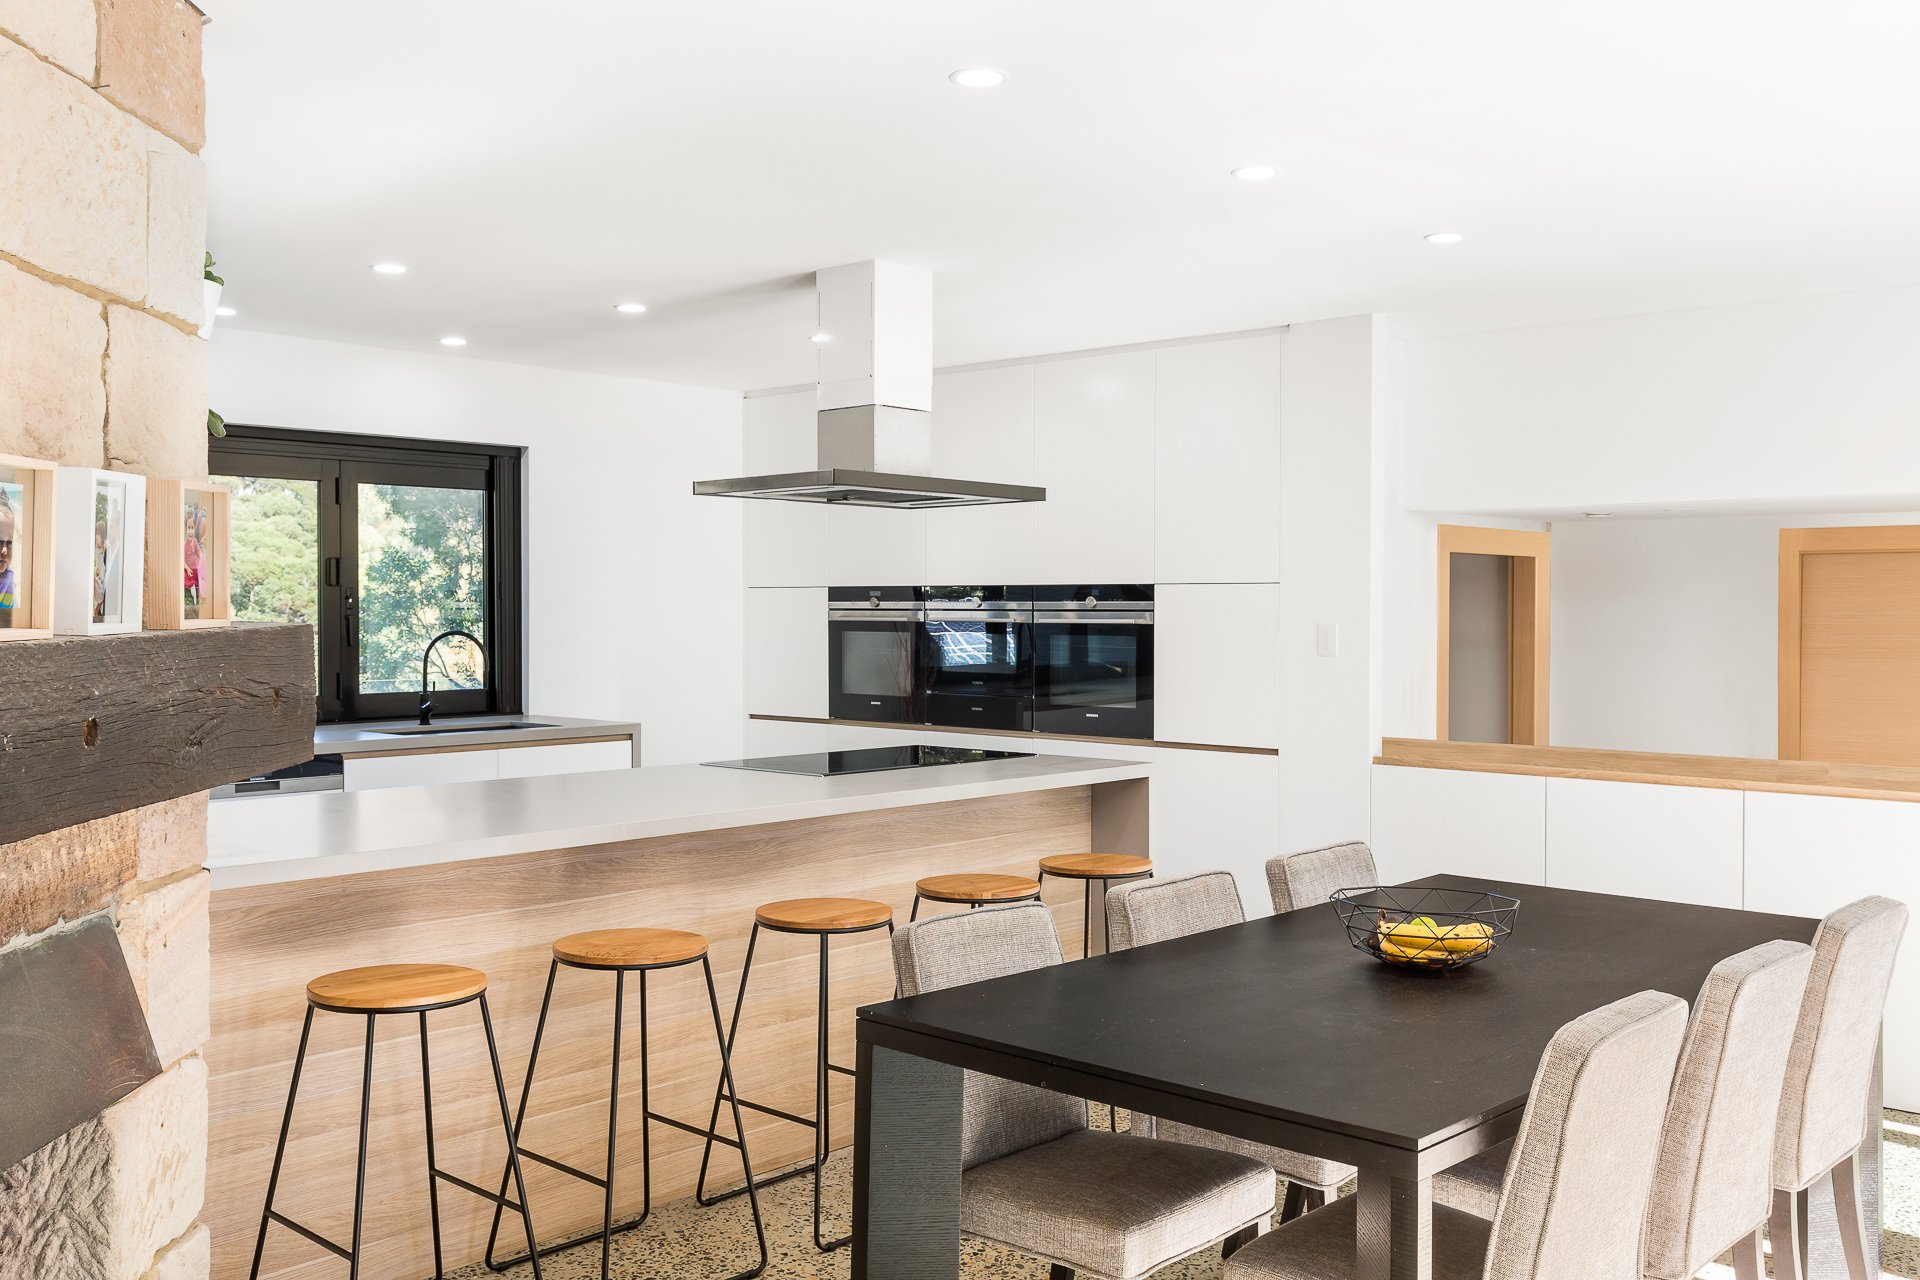 Kitchen Renovation Sydney | Luxury Kitchens | Balnei & Colina